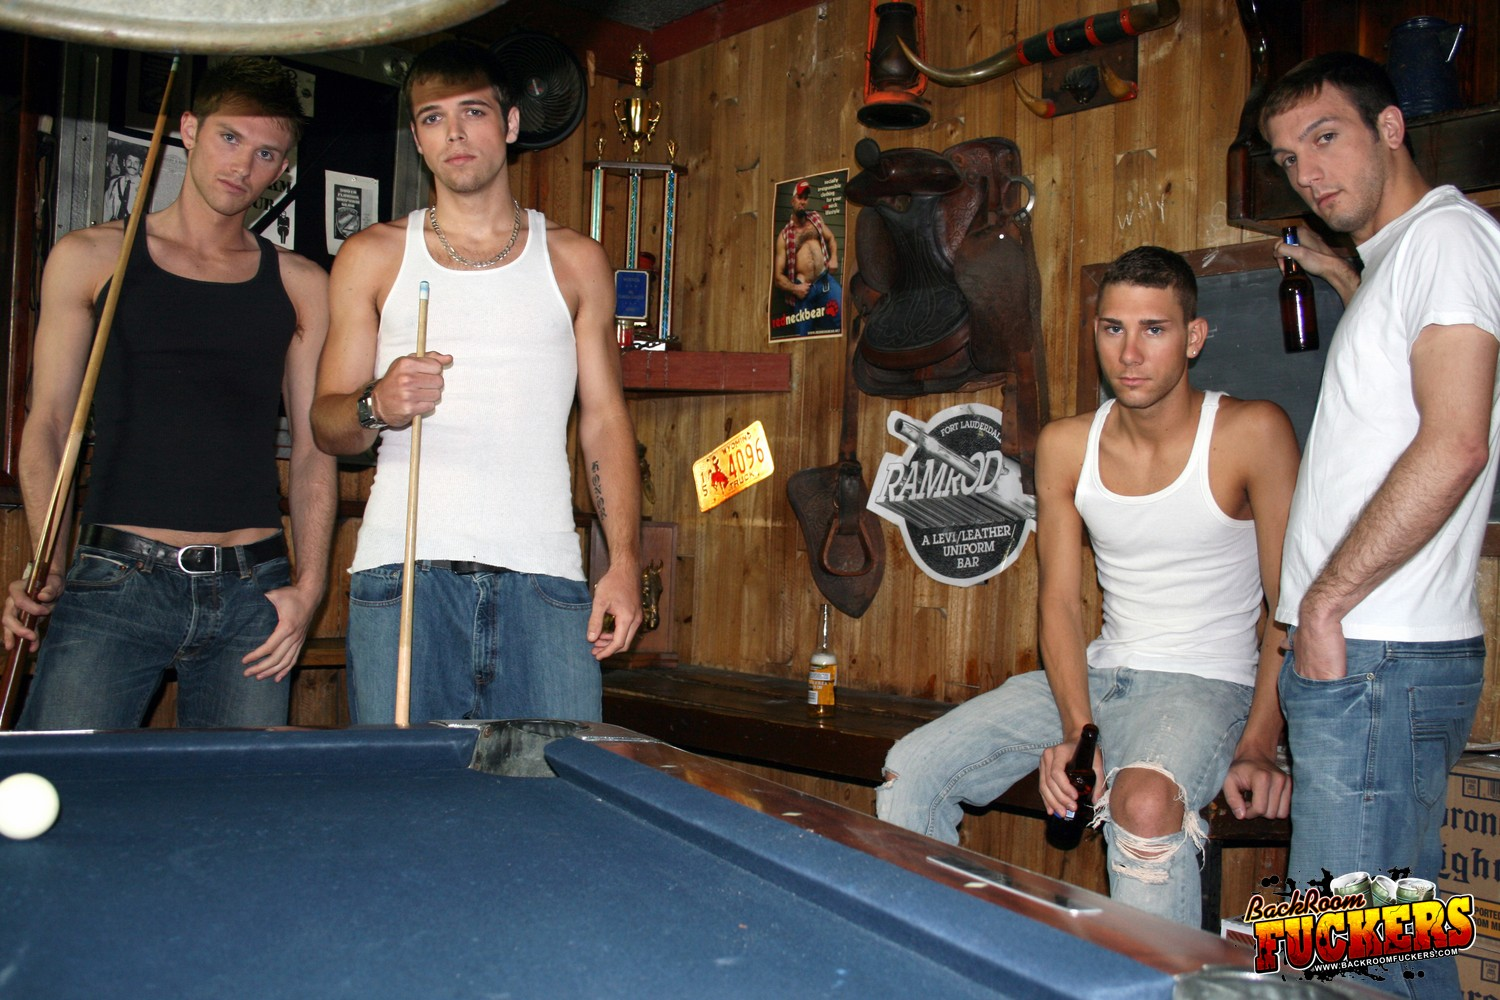 free gay group sex videos015 Would like to meet men of all ages for naughty adult games.